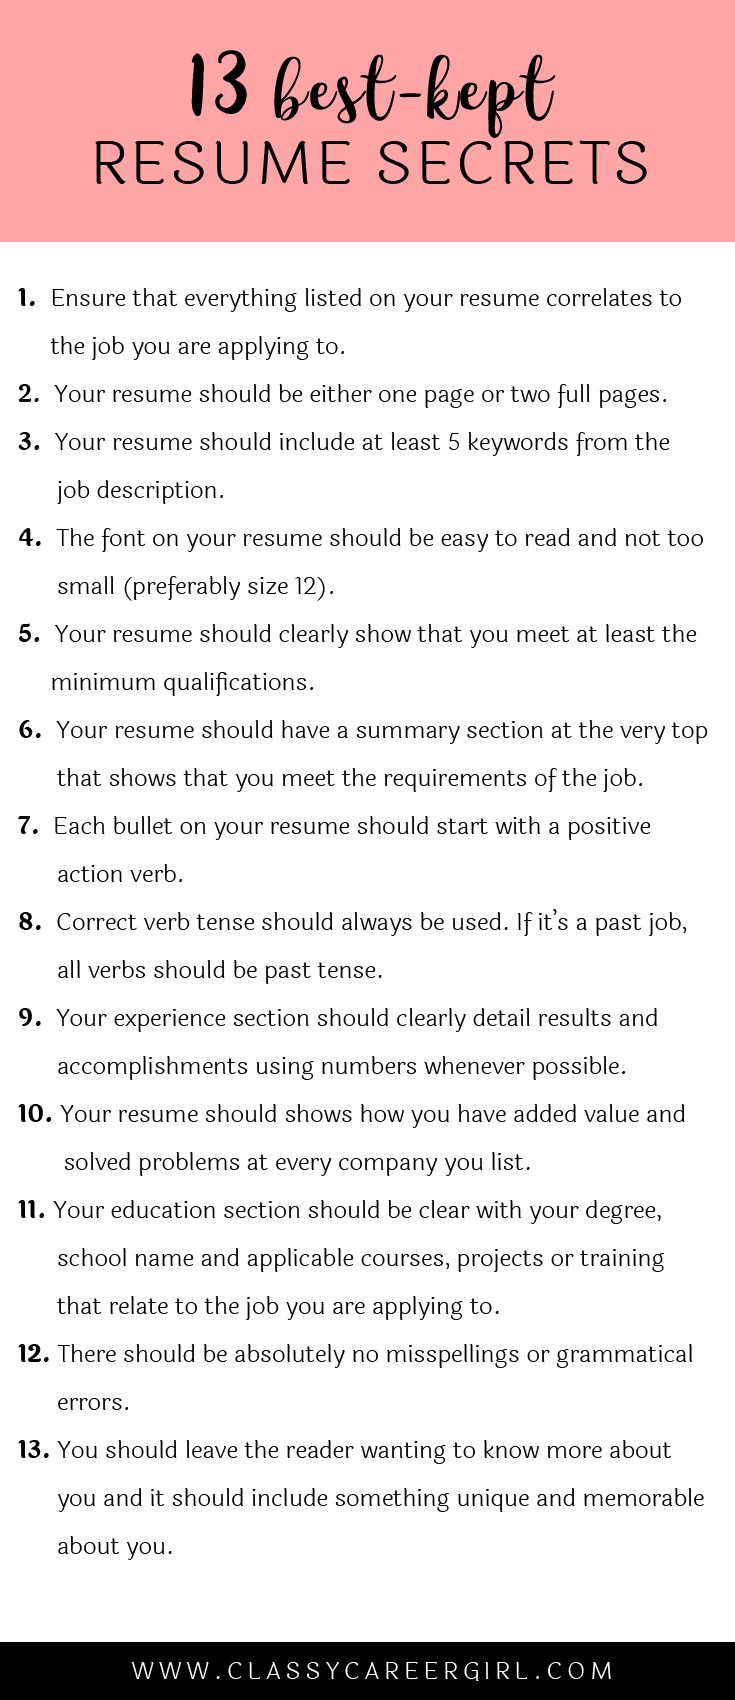 Opposenewapstandardsus  Fascinating  Ideas About Resume On Pinterest  Cv Format Resume Cv And  With Goodlooking Some Hiring Managers Will Toss Your Resume Out If You Dont Know These  With Beauteous Legal Assistant Resumes Also Business Skills Resume In Addition Sample Consulting Resume And Pastors Resume As Well As Best Resume Verbs Additionally Clothing Store Resume From Pinterestcom With Opposenewapstandardsus  Goodlooking  Ideas About Resume On Pinterest  Cv Format Resume Cv And  With Beauteous Some Hiring Managers Will Toss Your Resume Out If You Dont Know These  And Fascinating Legal Assistant Resumes Also Business Skills Resume In Addition Sample Consulting Resume From Pinterestcom